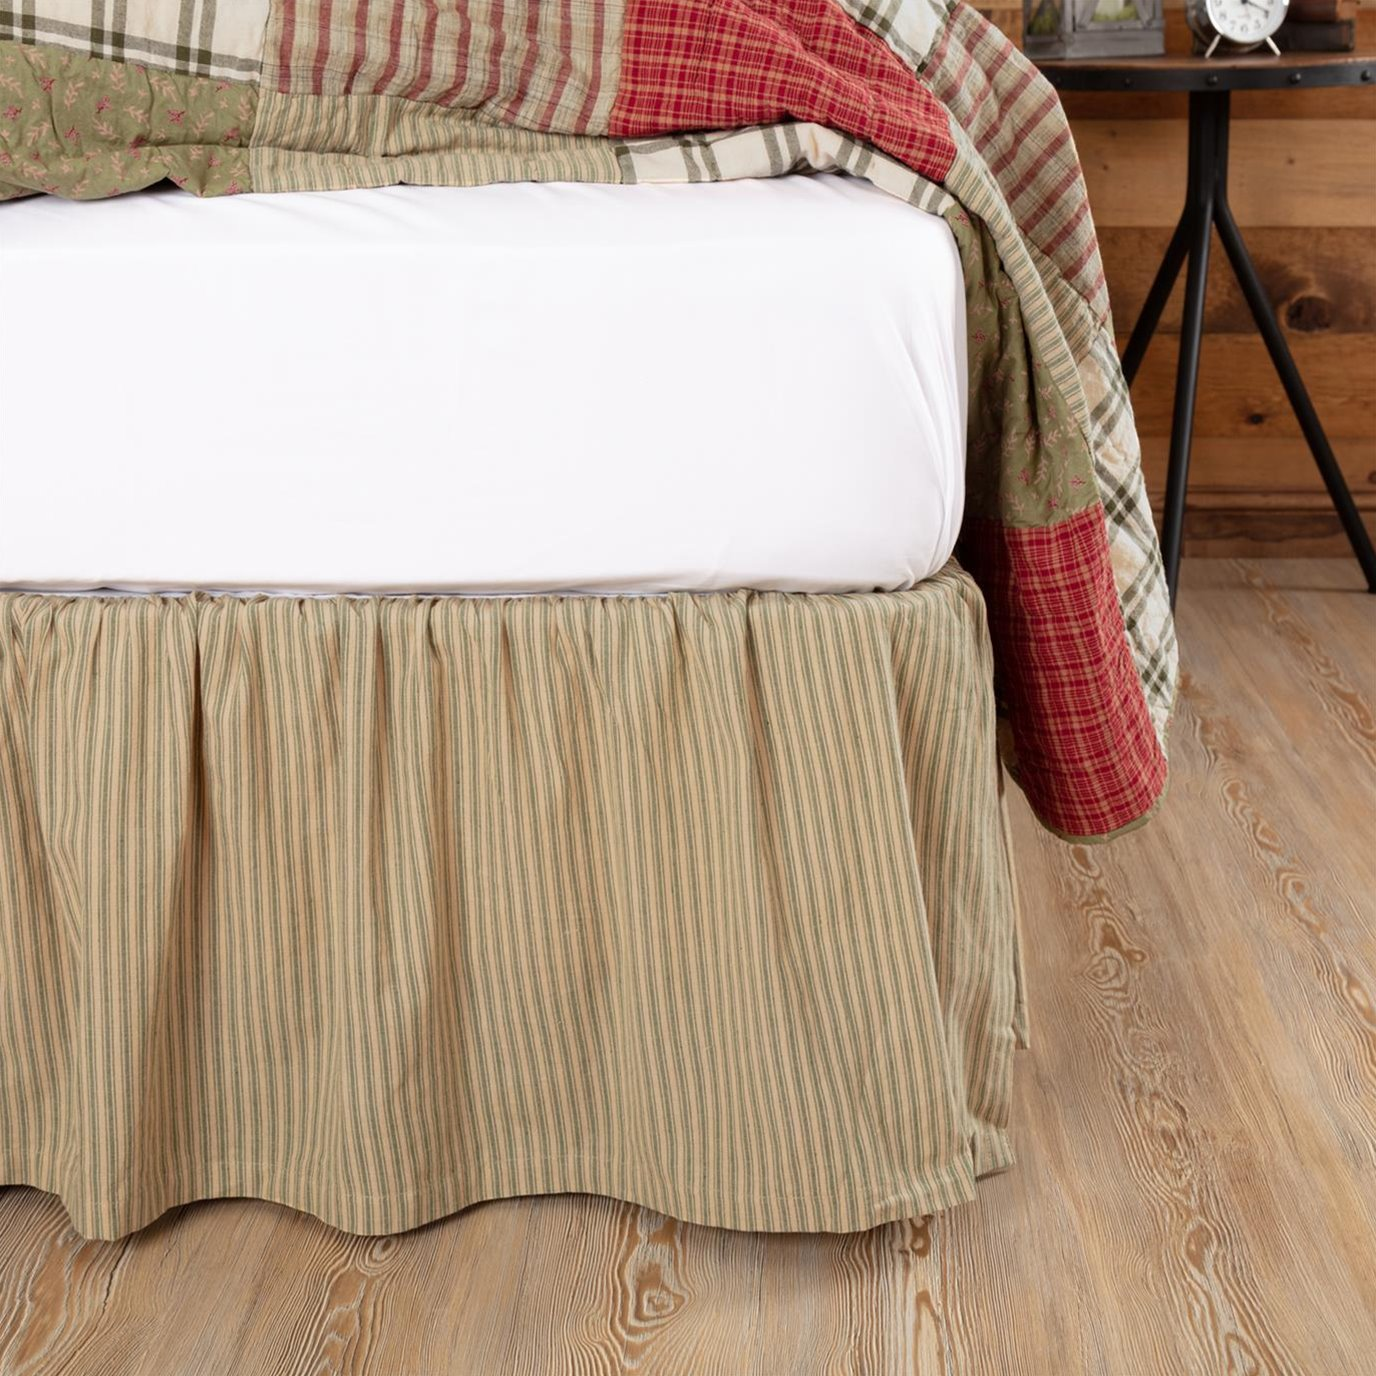 Prairie Winds Green Ticking Stripe Twin Bed Skirt 39x76x16